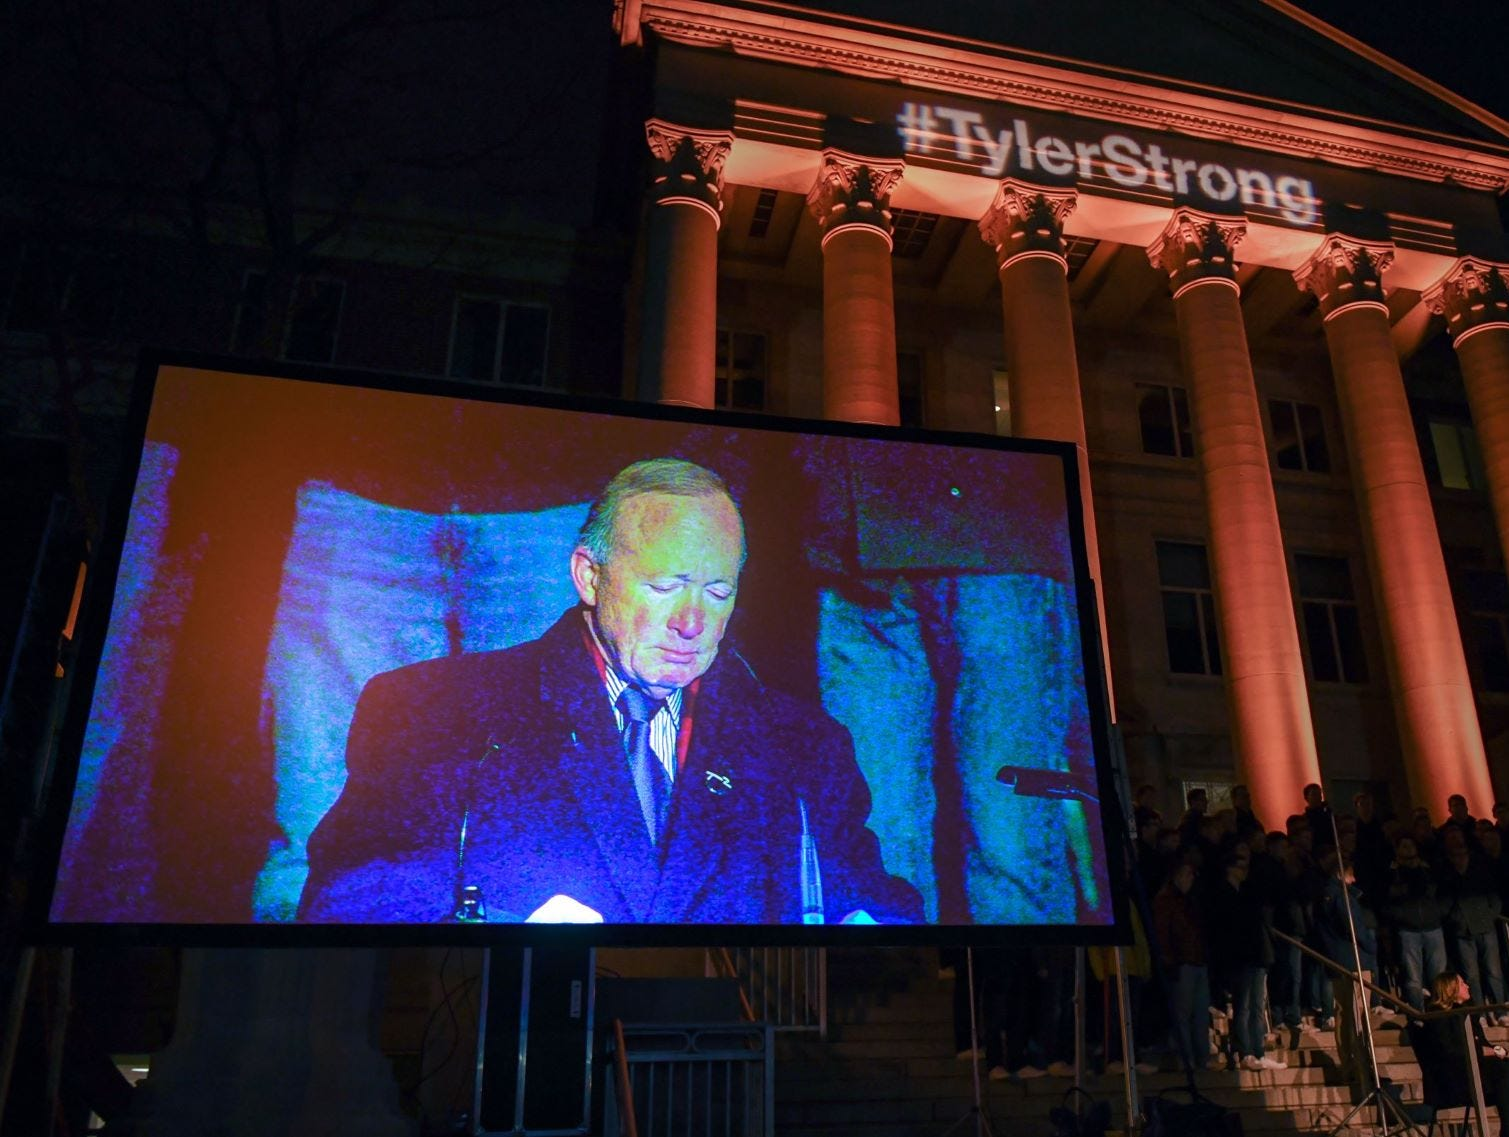 Purdue University president Mitch Daniels fought back tears as he eulogized Tyler Trent at a memorial service and candlelight vigil for Trent at Purdue University in West Lafayette on January 9, 2019.